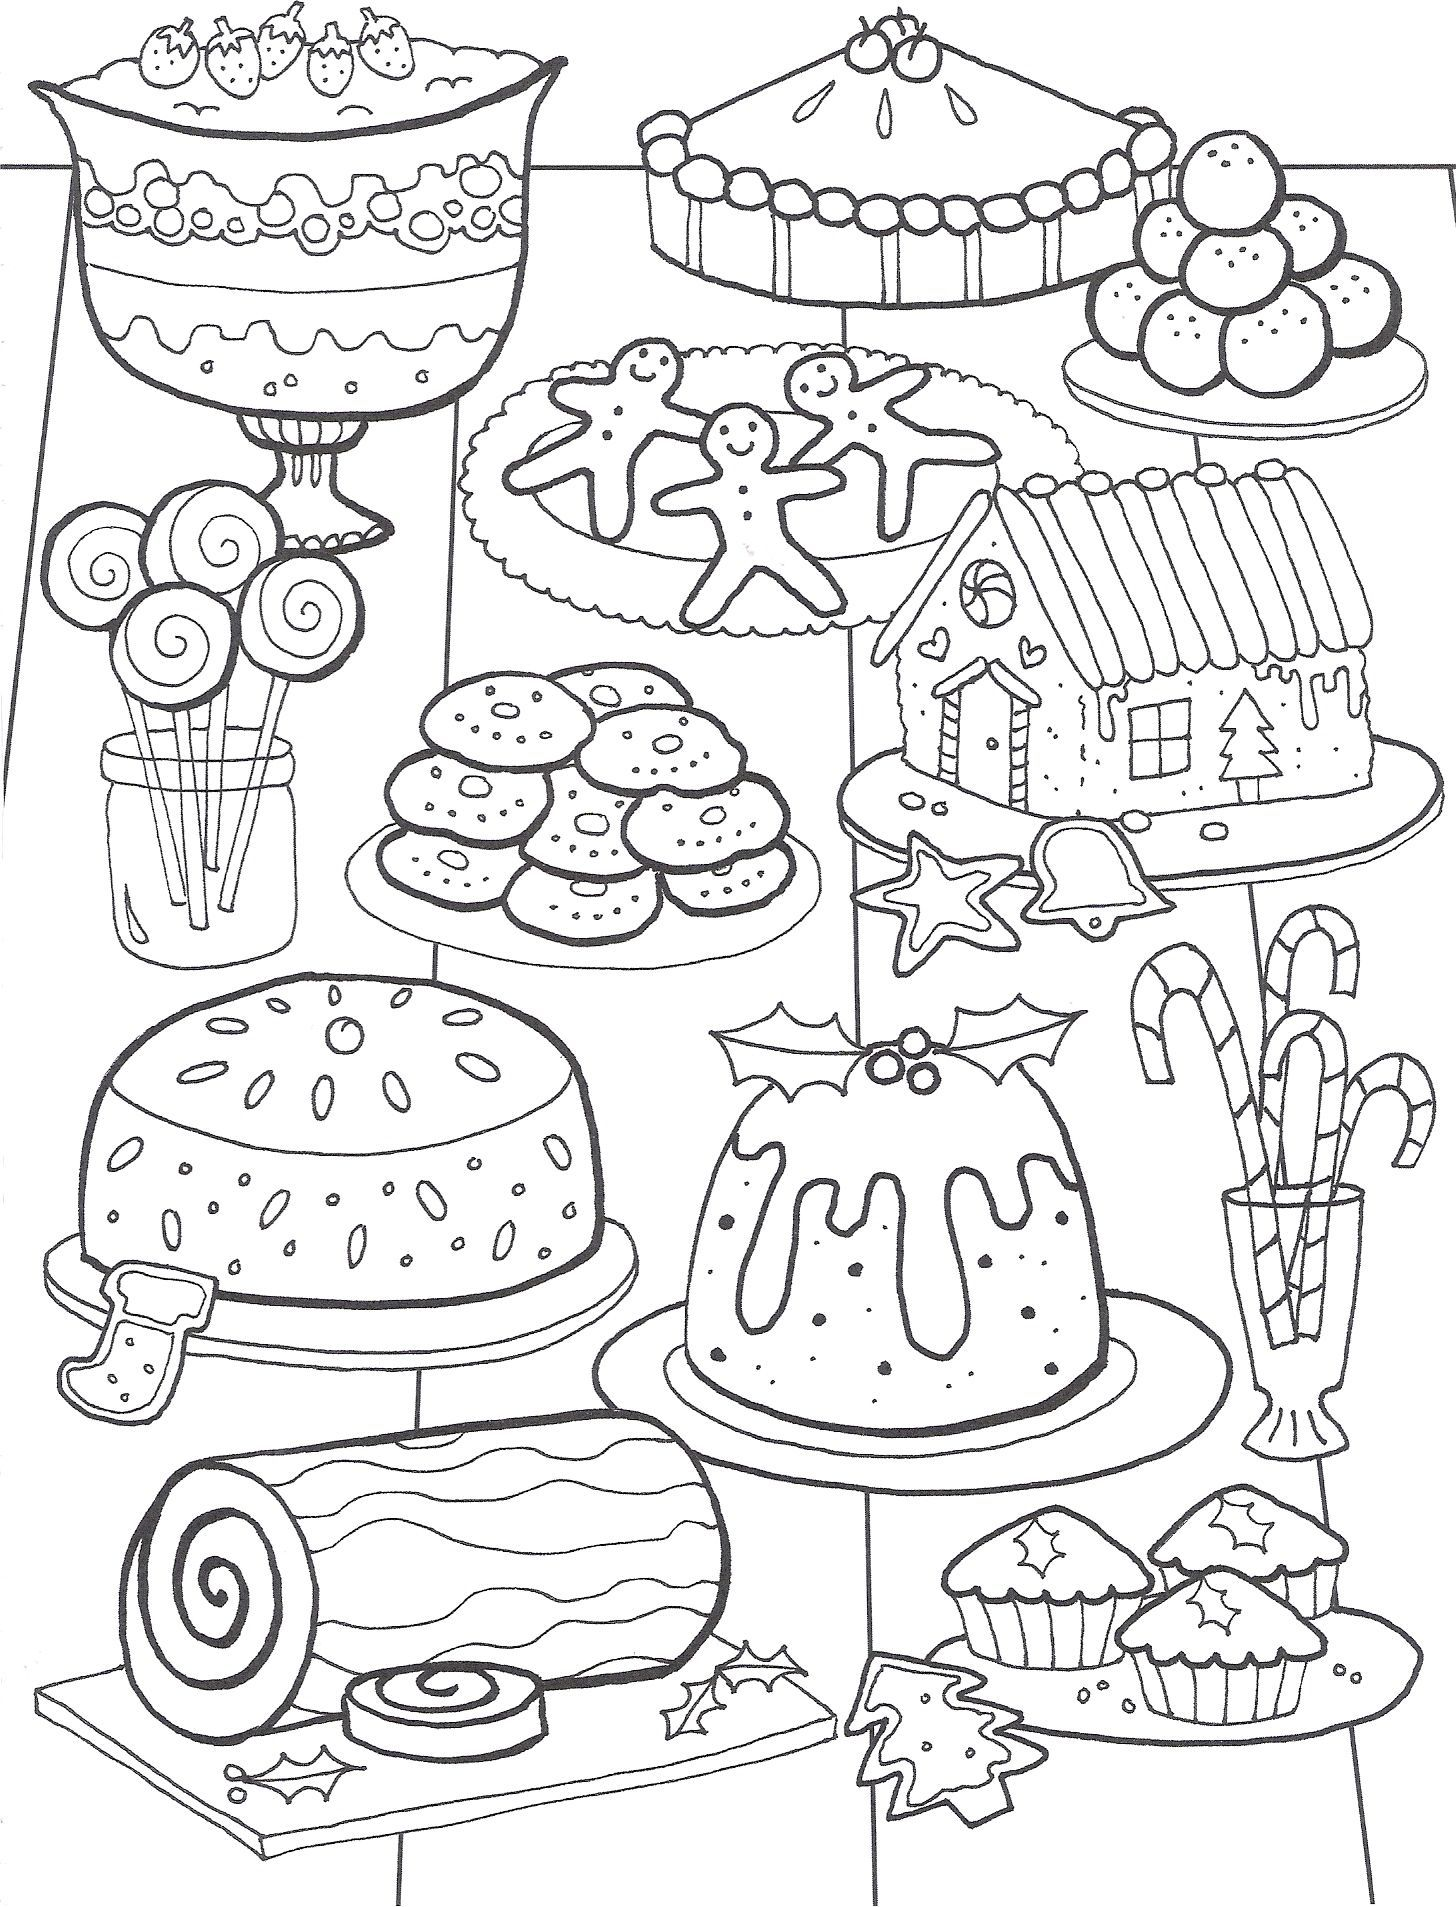 Pin By Tana Herrlein On Coloring Pages Food Stuffs Food Cool Coloring Pages Food Coloring Pages Candy Coloring Pages